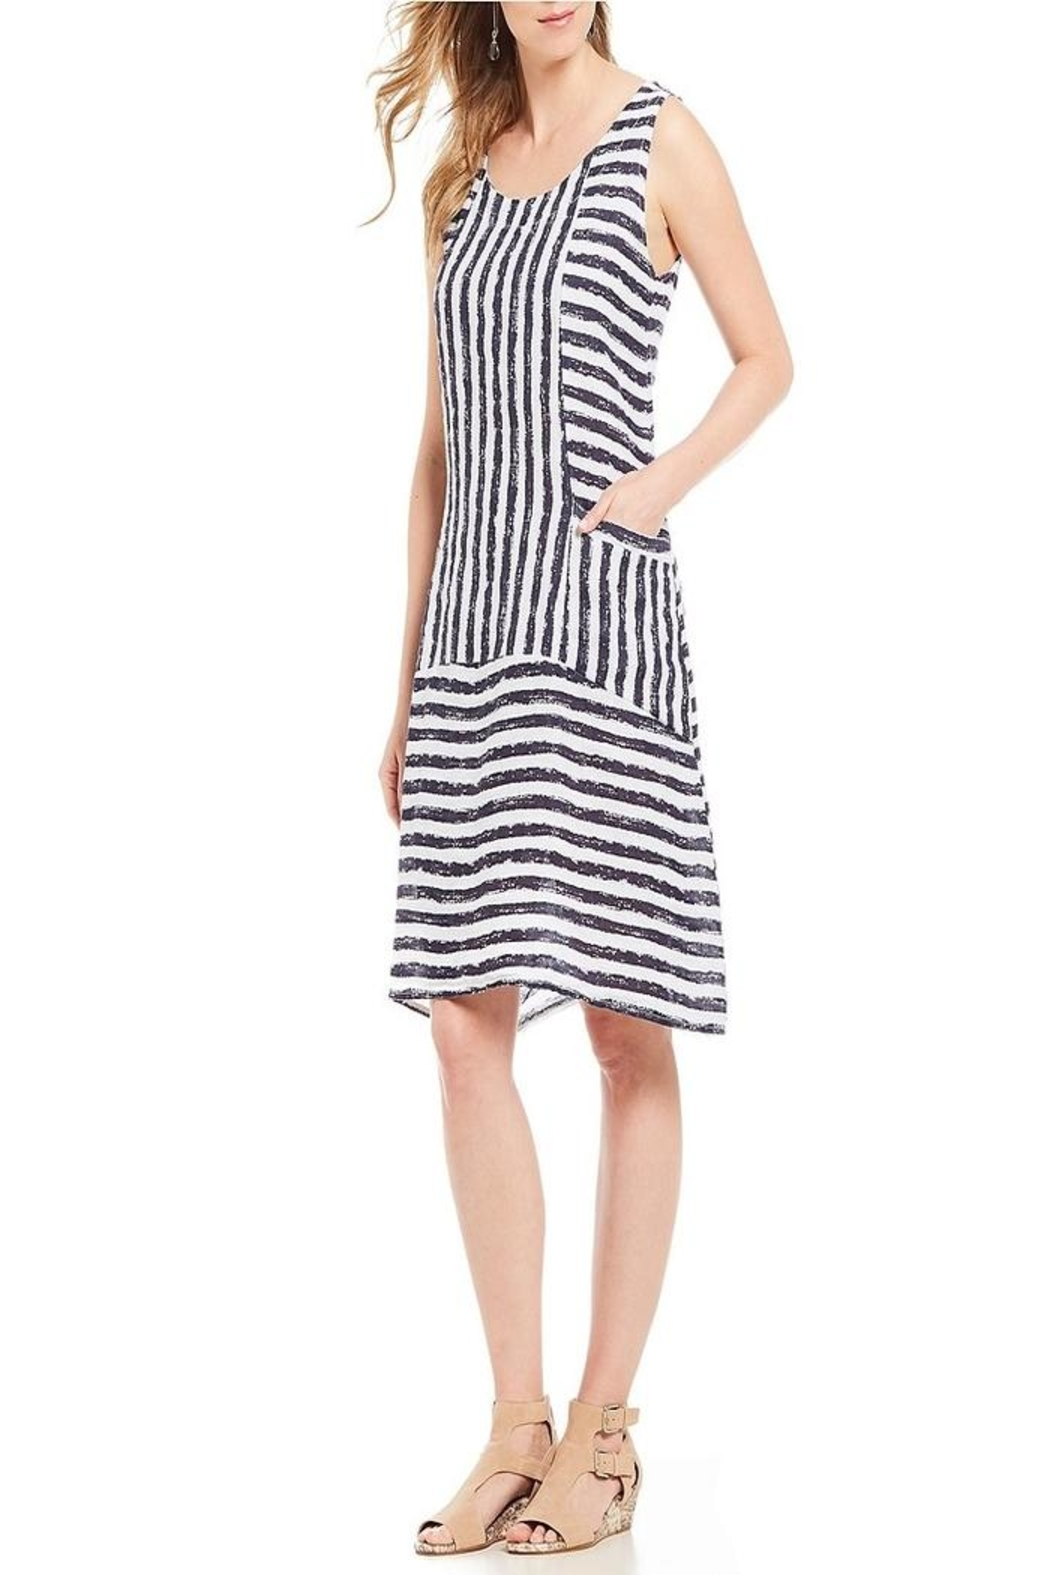 M made in Italy Strip Dress - Main Image